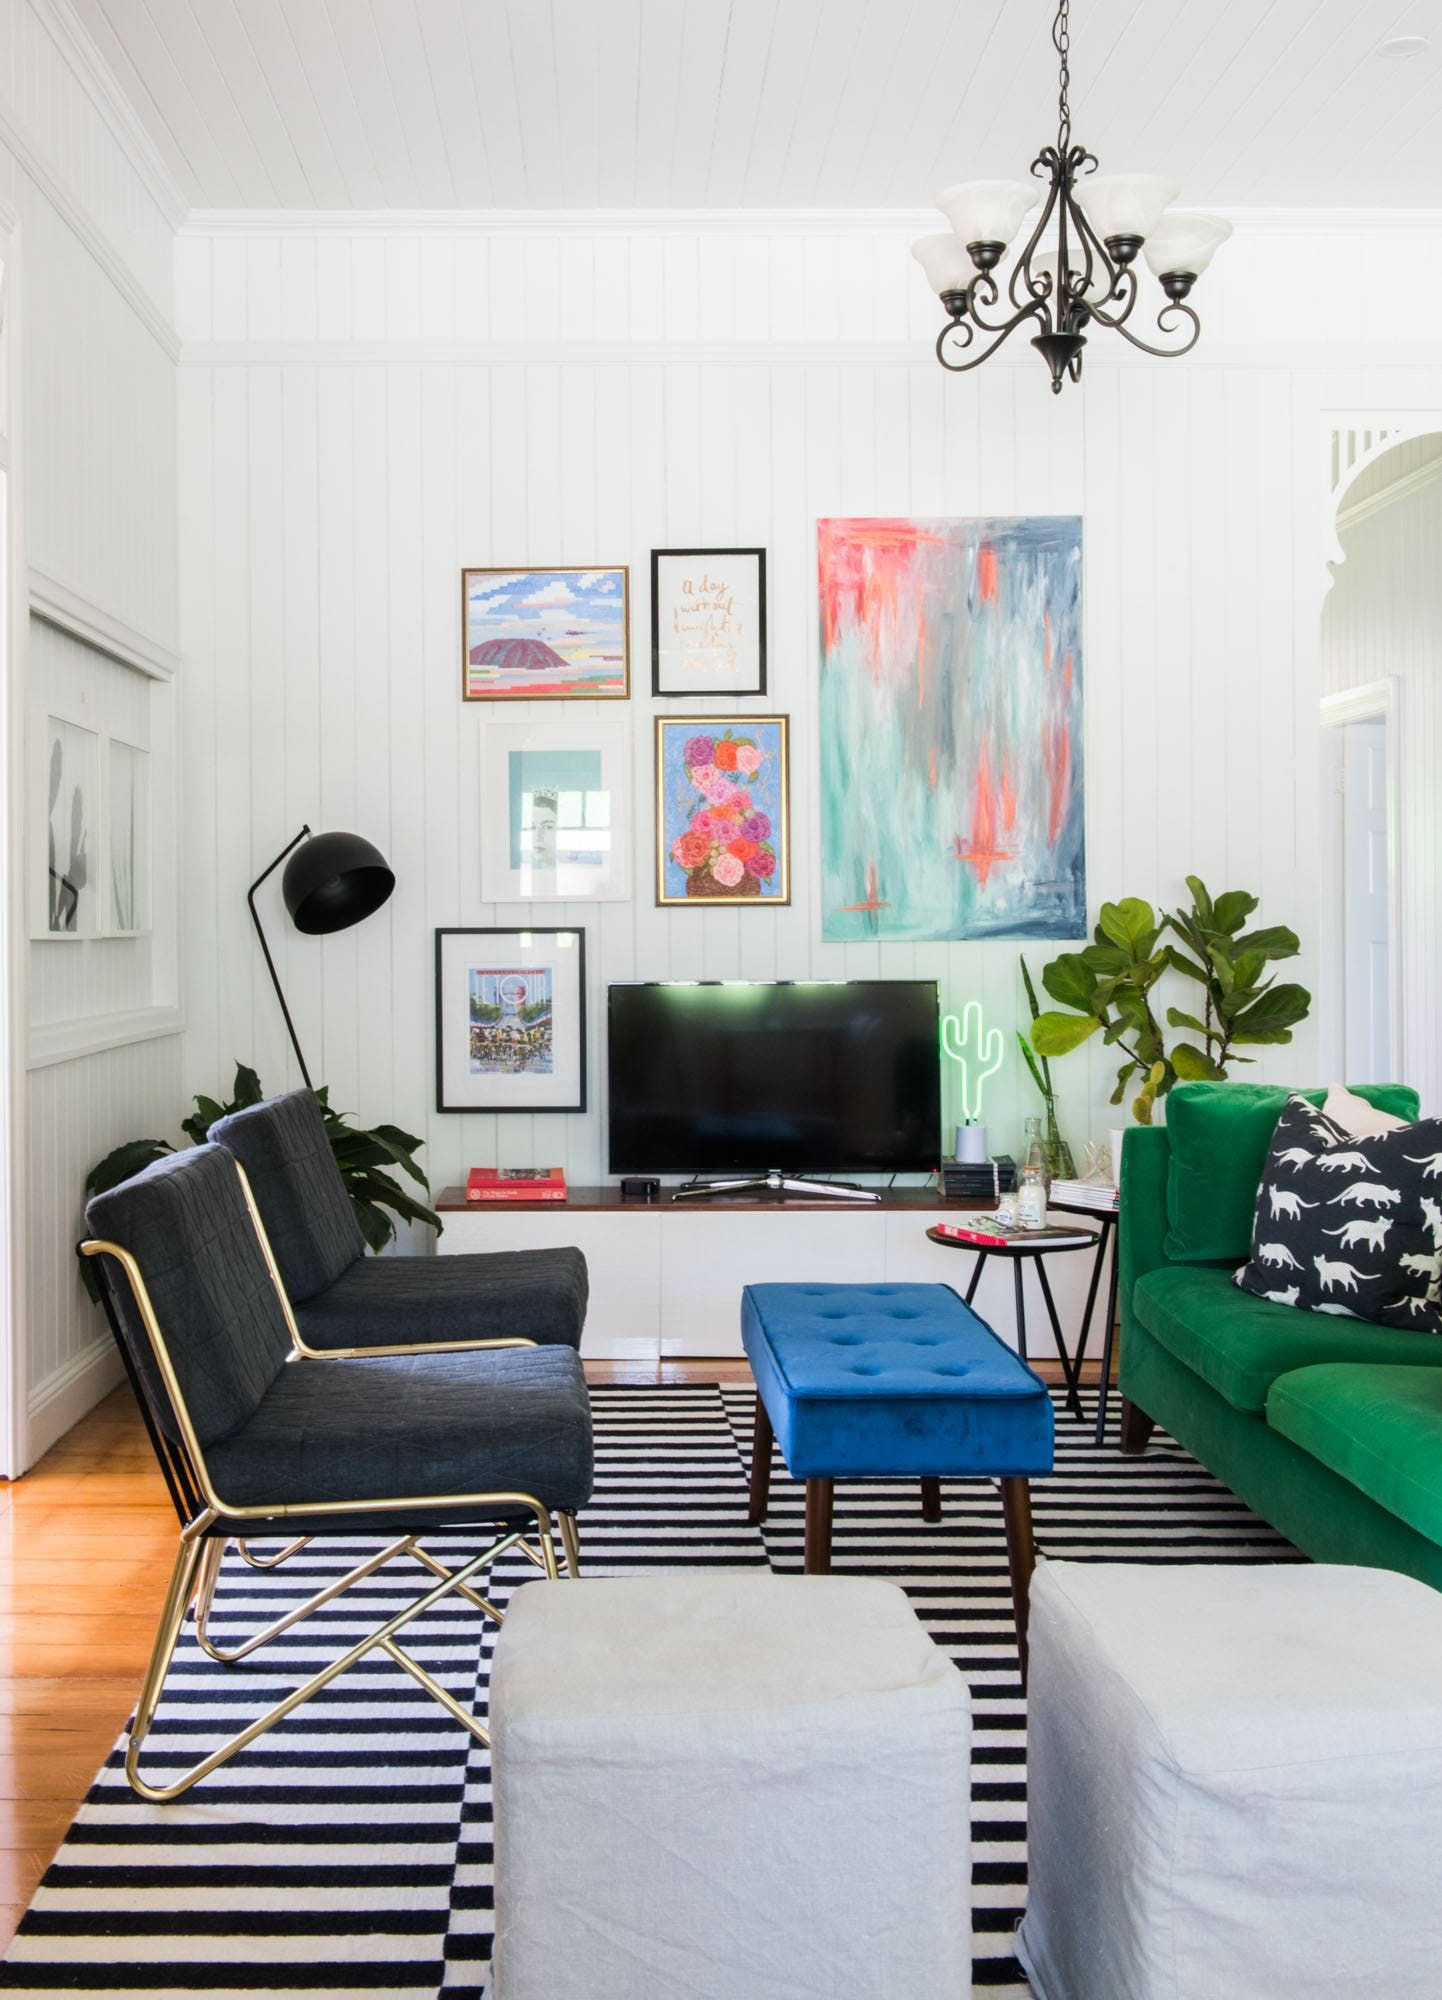 Cats u bright colors in an eclectic modern country home home fab